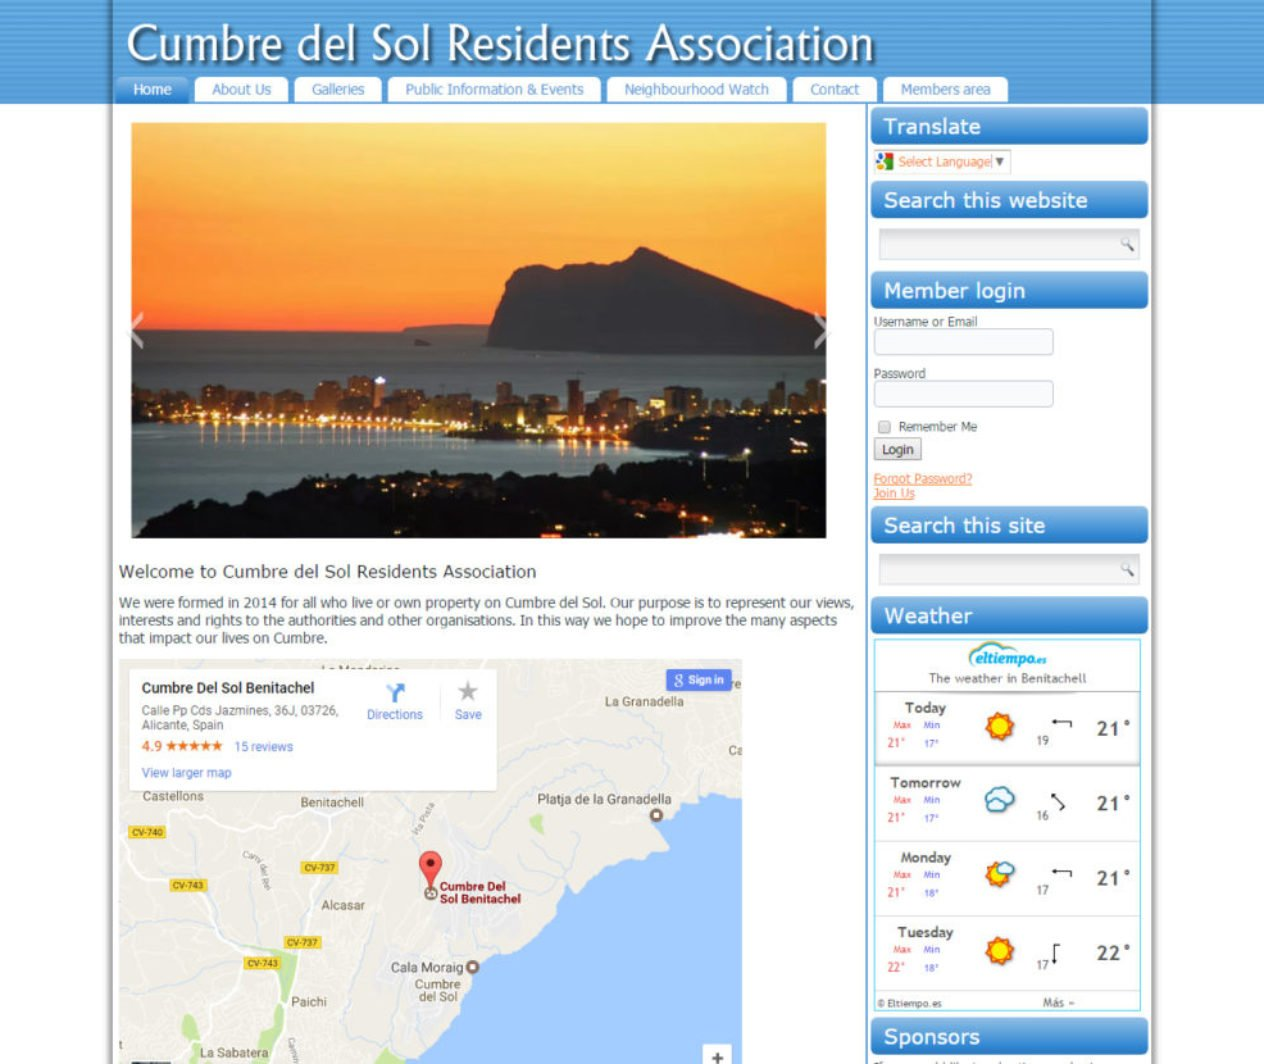 Cumbre del Sol Residents Association